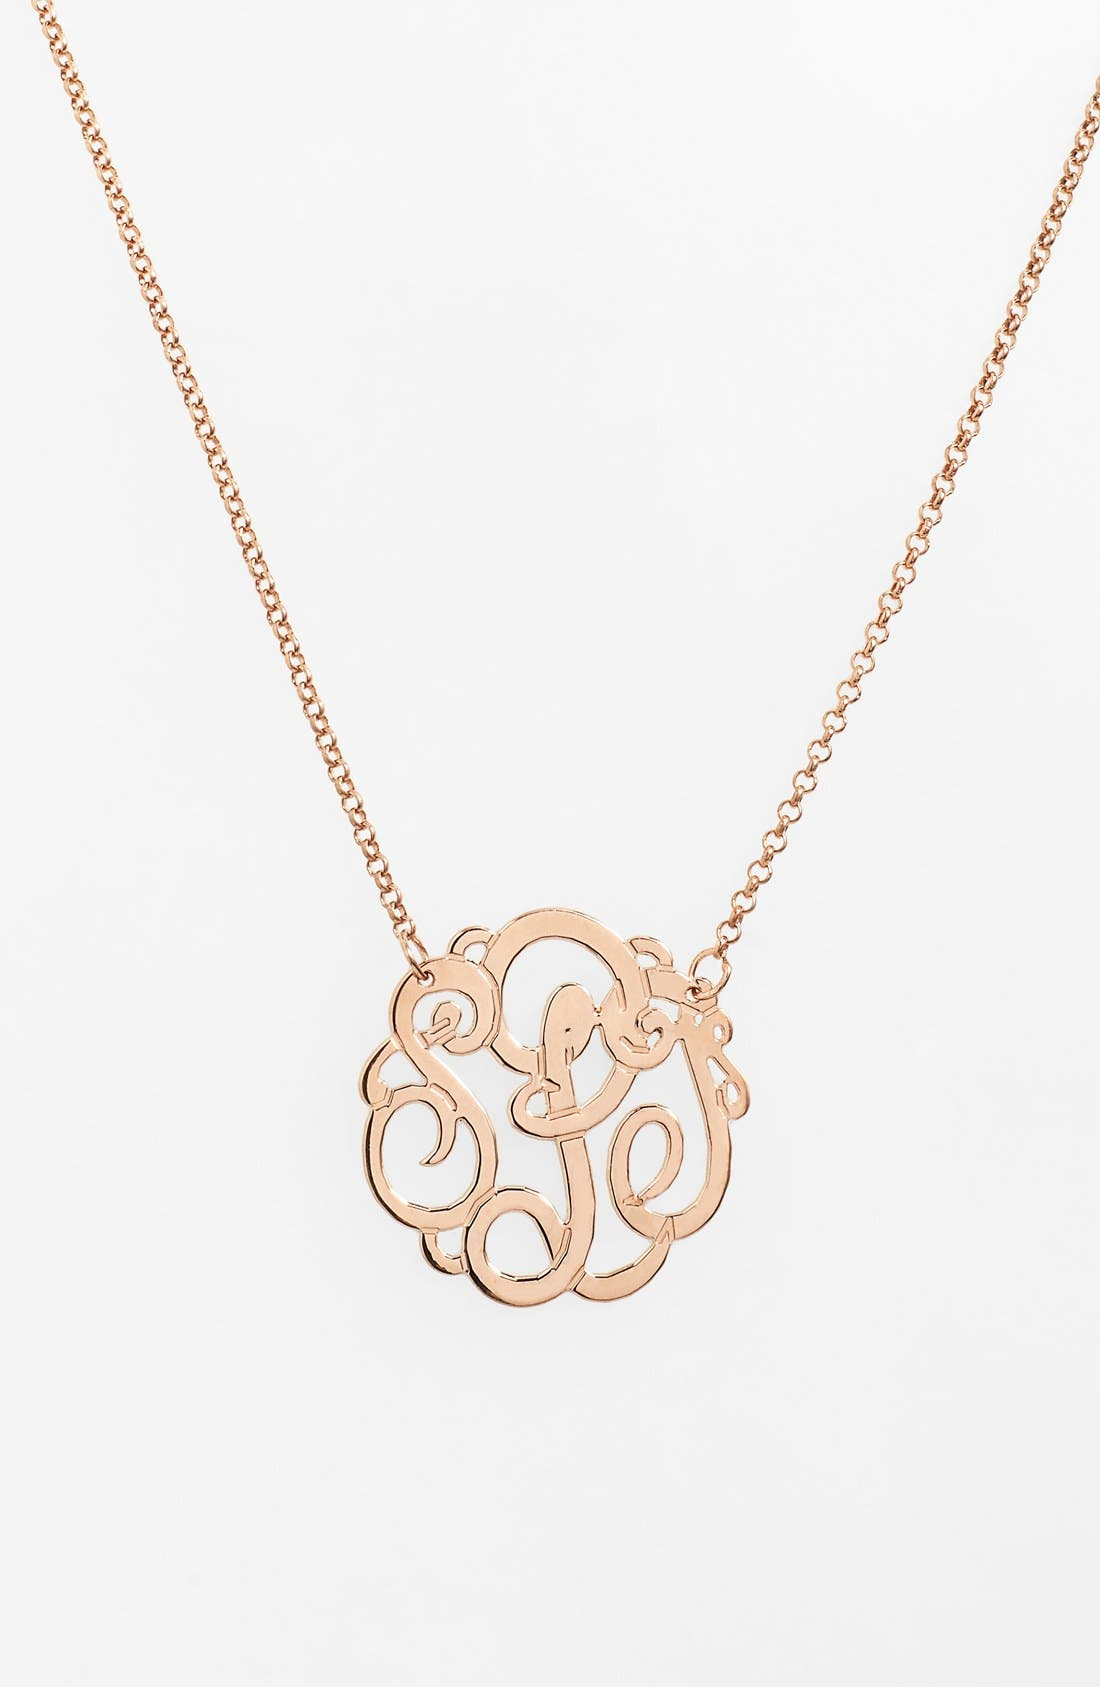 Alternate Image 1 Selected - Argento Vivo Personalized Small 3-Initial Letter Monogram Necklace (Nordstrom Exclusive)